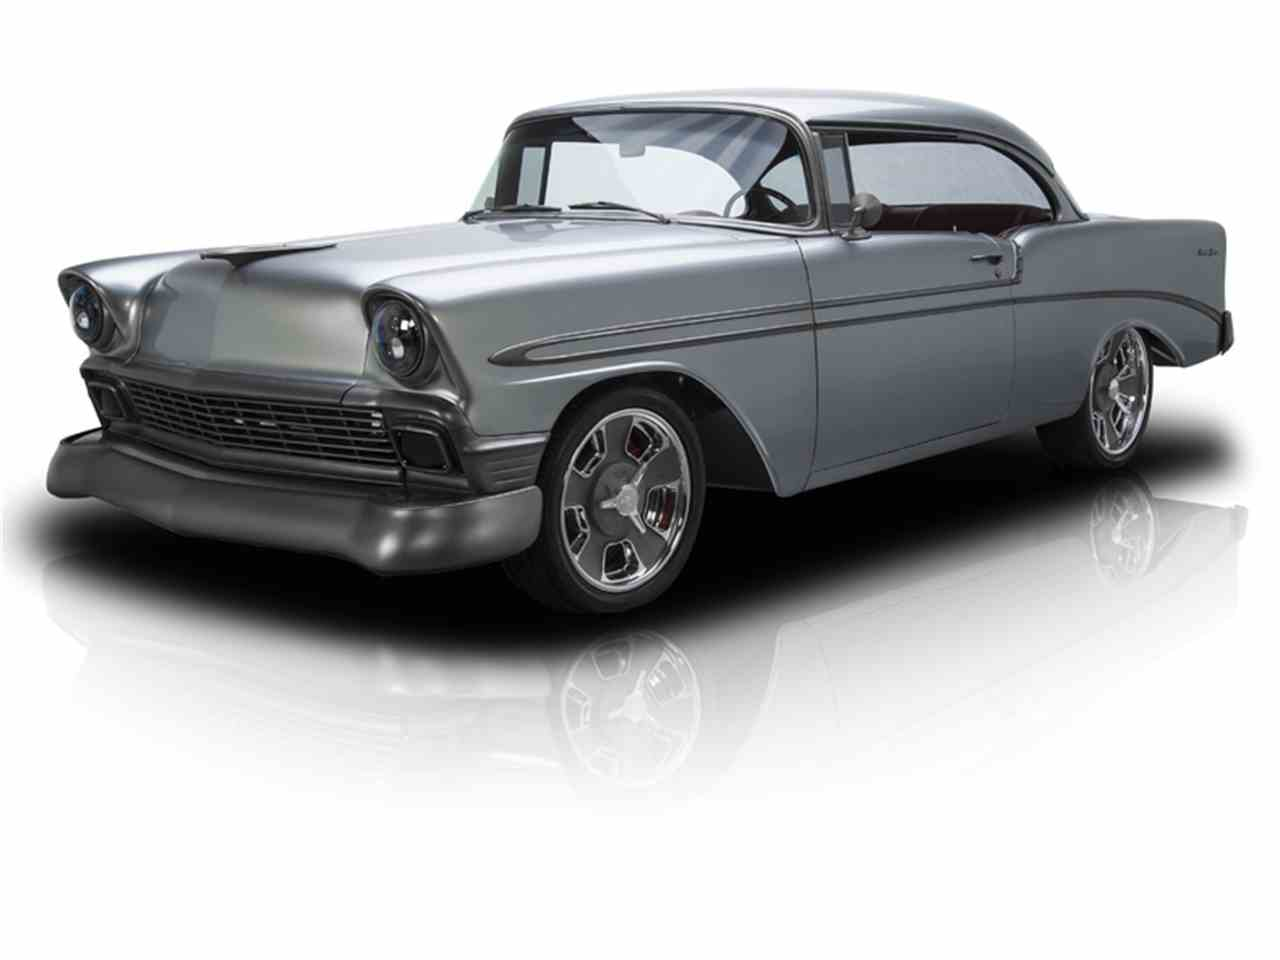 1956 chevrolet bel air for sale classic car liquidators - 1956 Chevrolet Bel Air For Sale Cc 854989